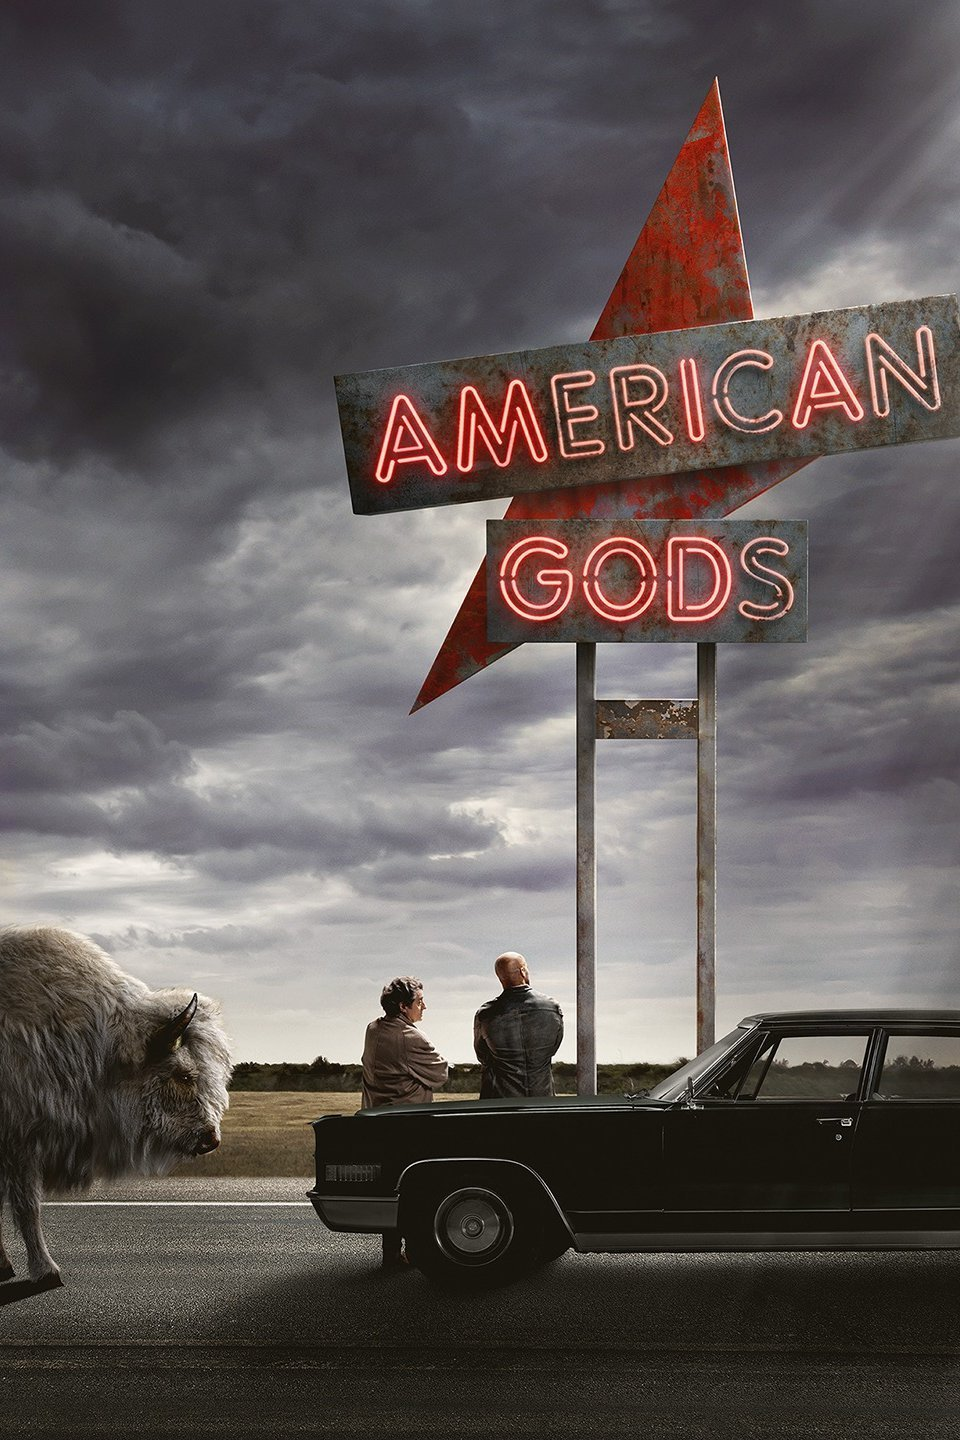 American Gods Season 1 Episode 2 Download 480p WEB-DL 150MB